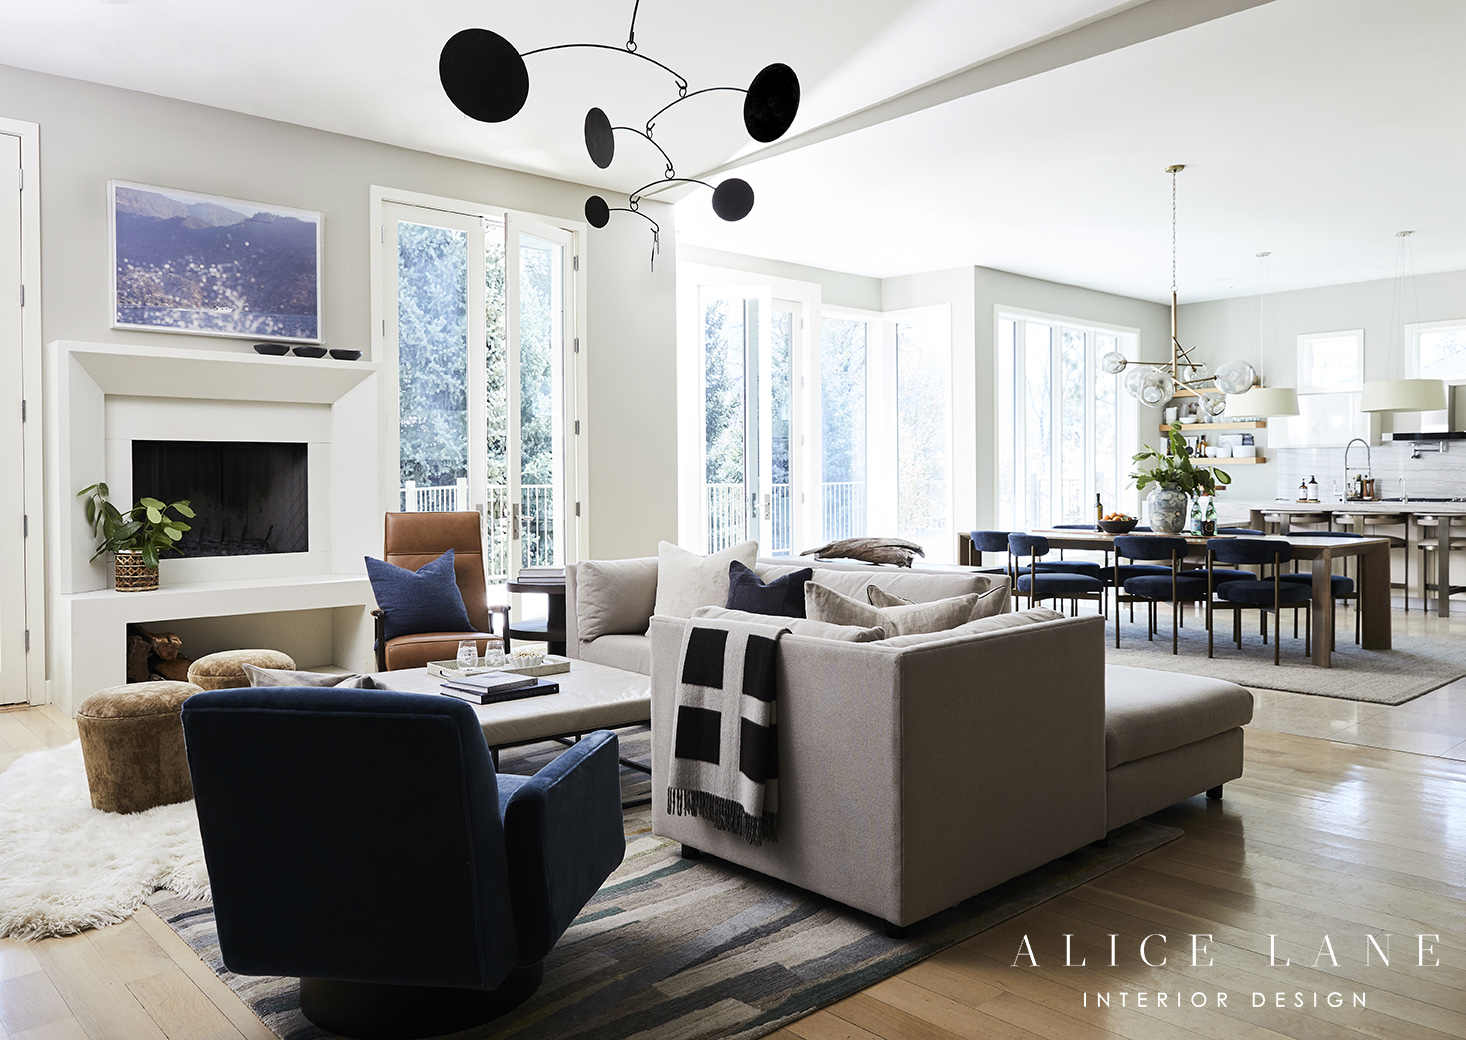 Riverside | Alice Lane Interior Design | Photo by Nicole Gerulat